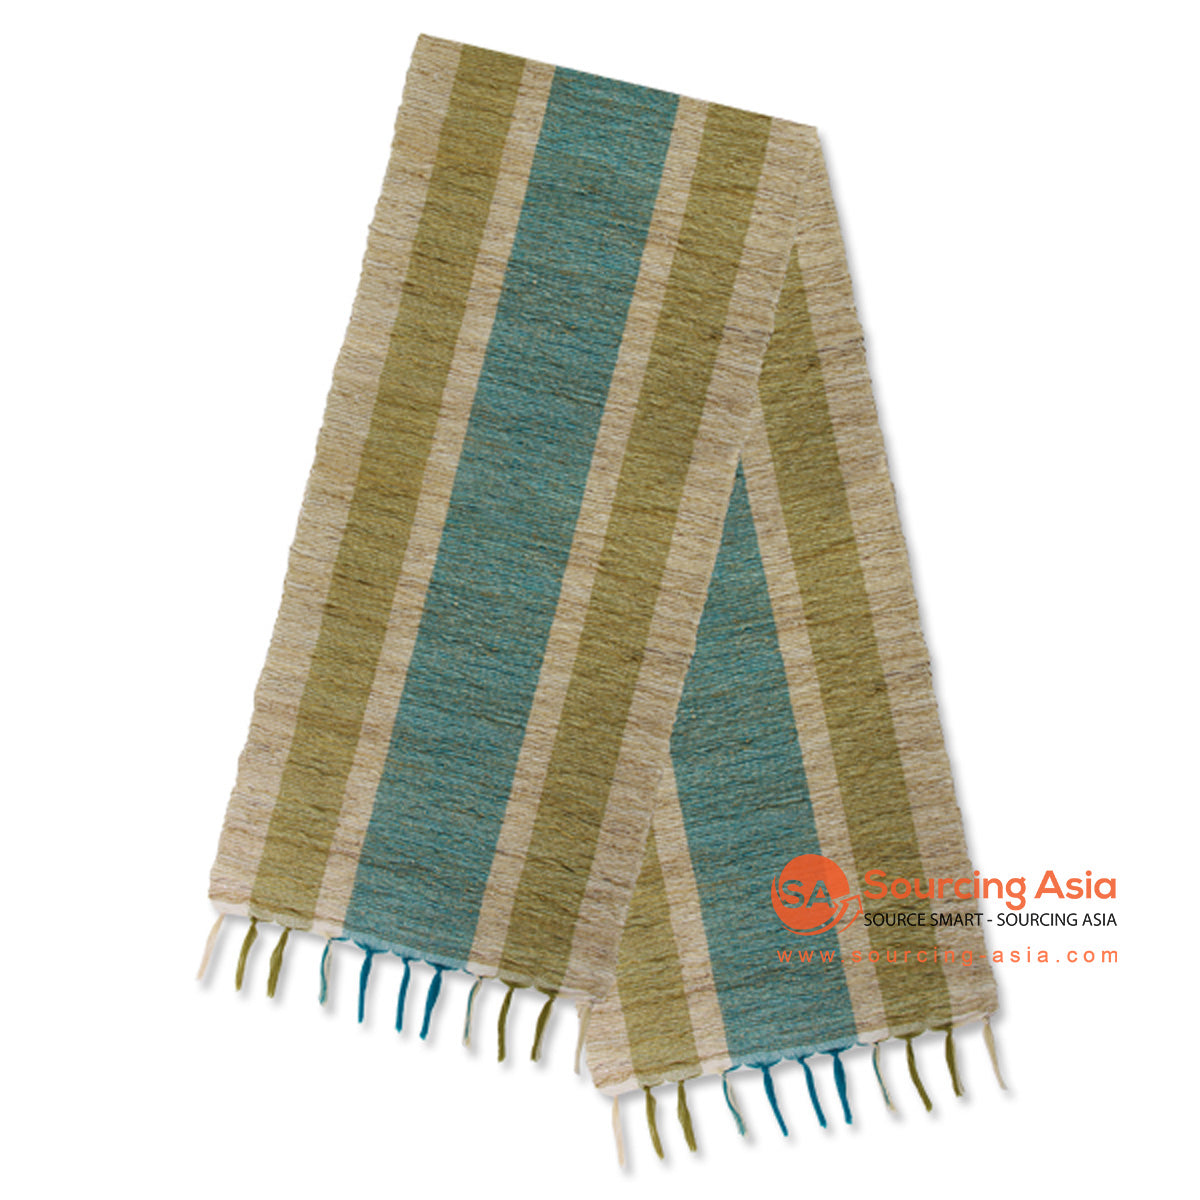 BZN034-2 SANDALWOOD TABLE RUNNER